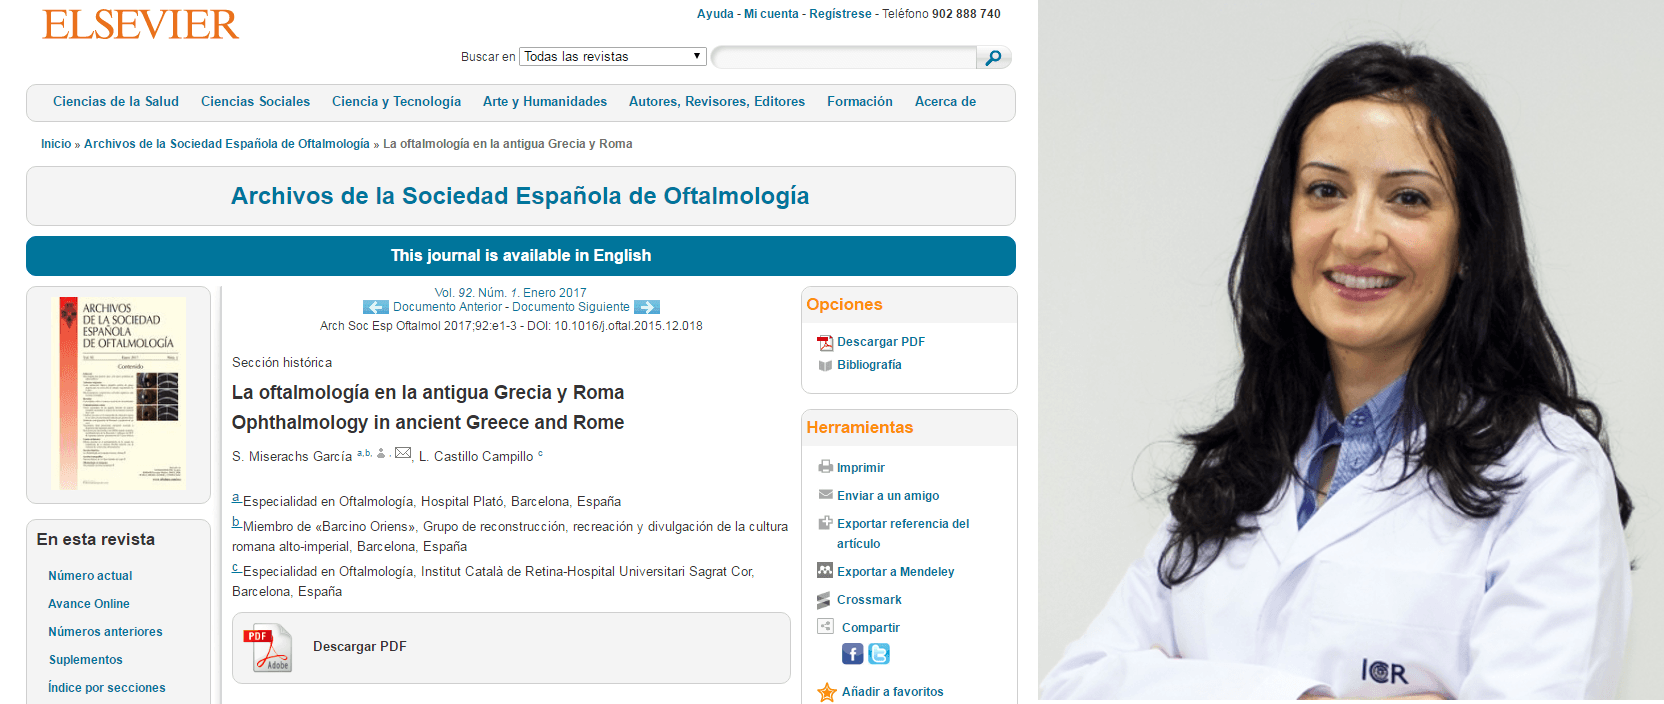 Dr. Castillo coauthors an article on ophthalmology during the ancient Greece and Rome